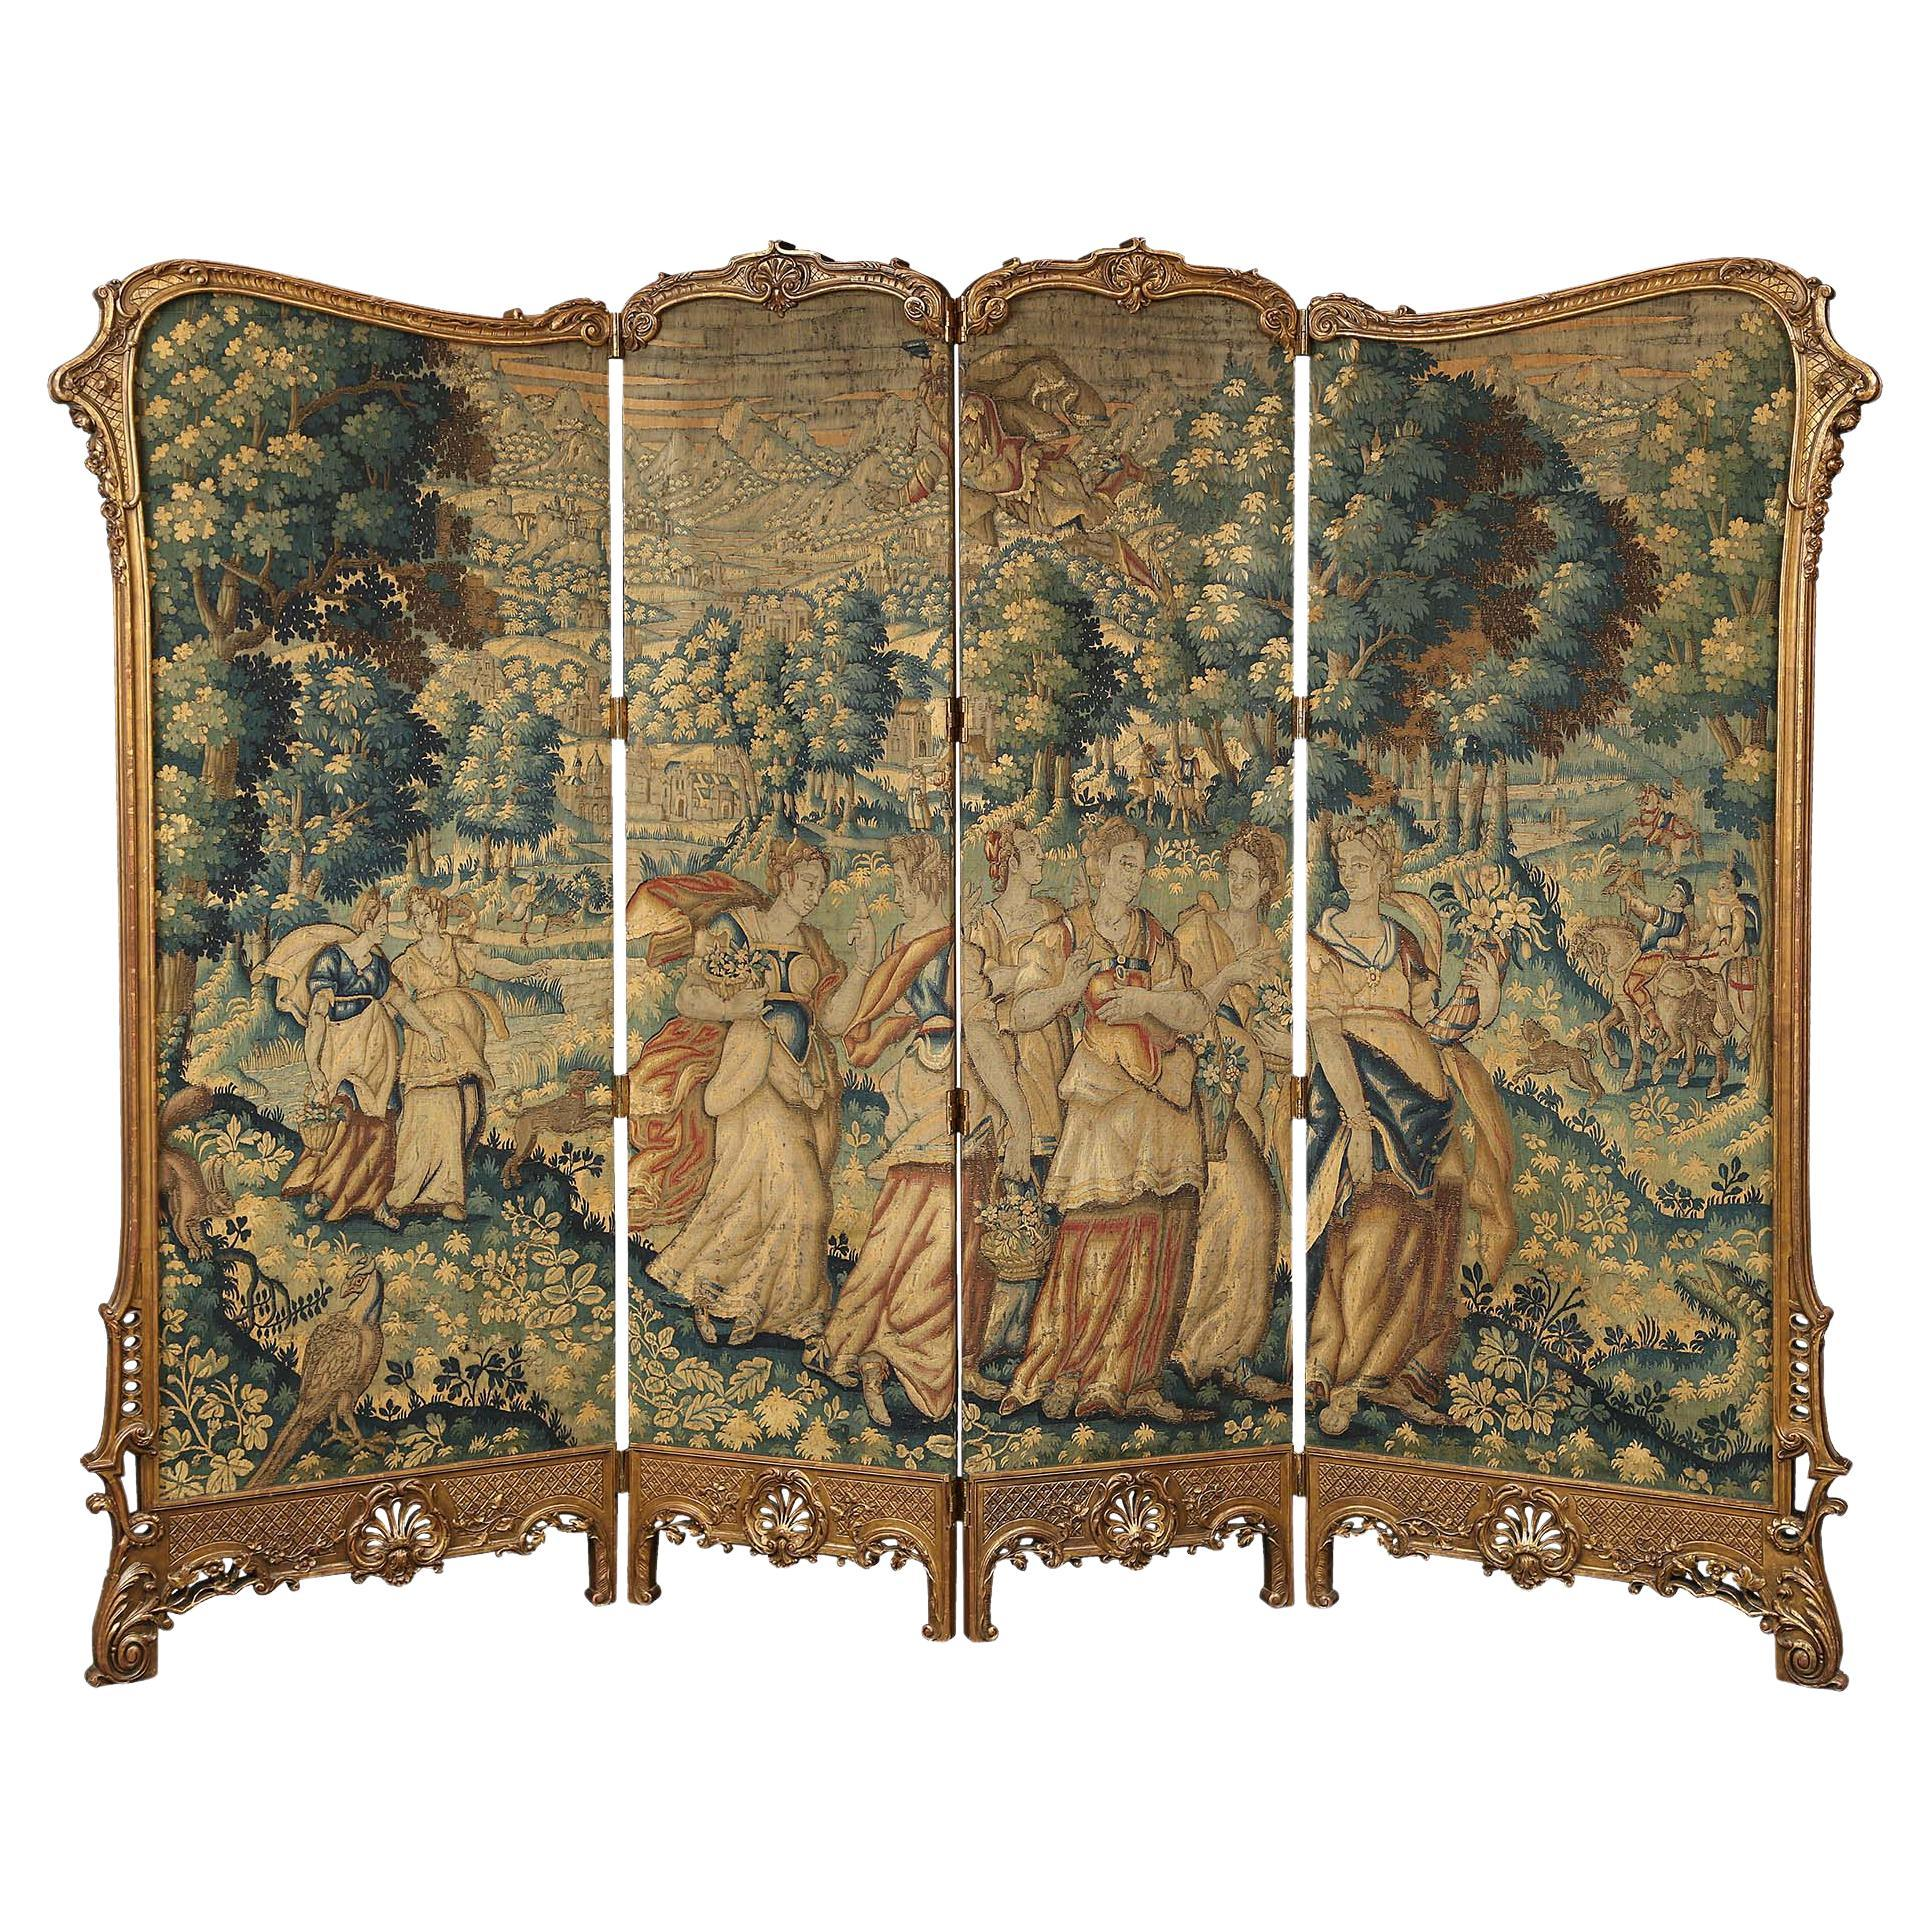 French 19th Century Louis XV Style Giltwood Four Paneled Screen